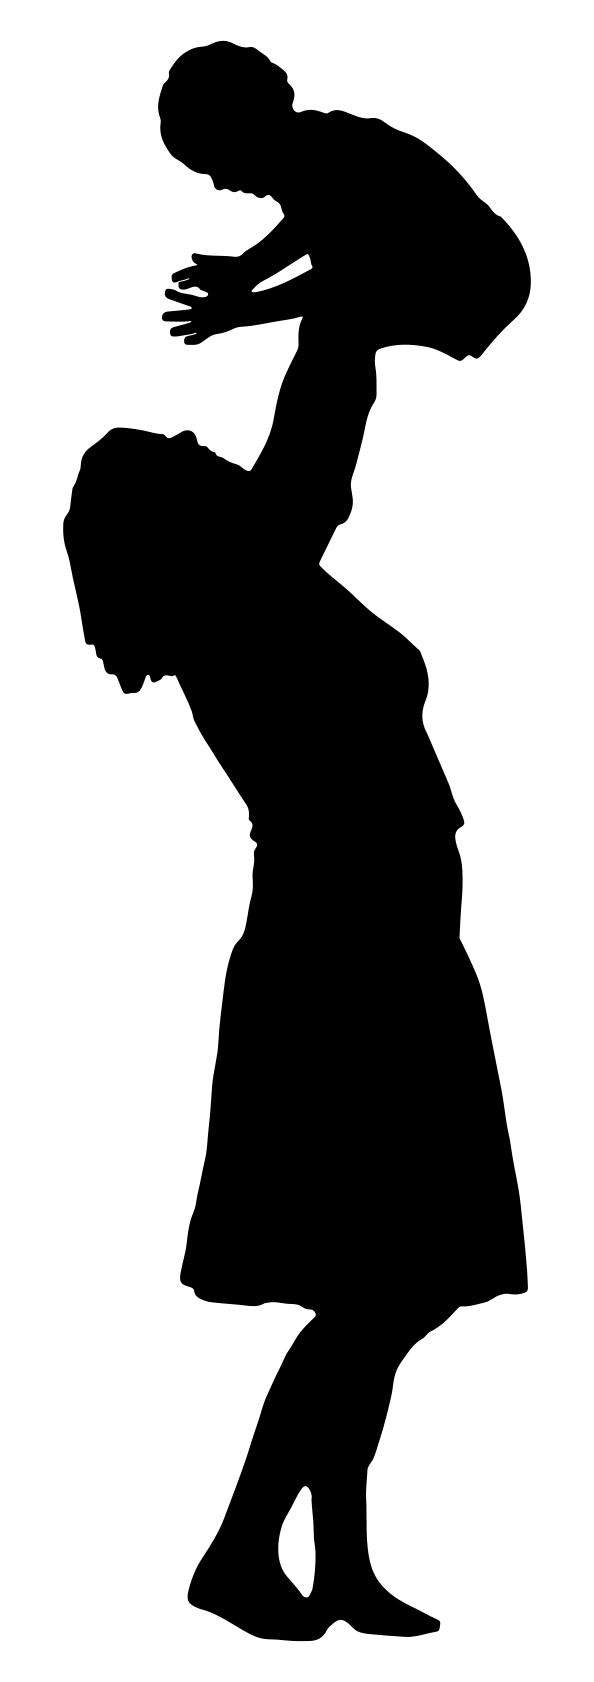 594x1682 Mother Playing With Child Silhouette Clipart